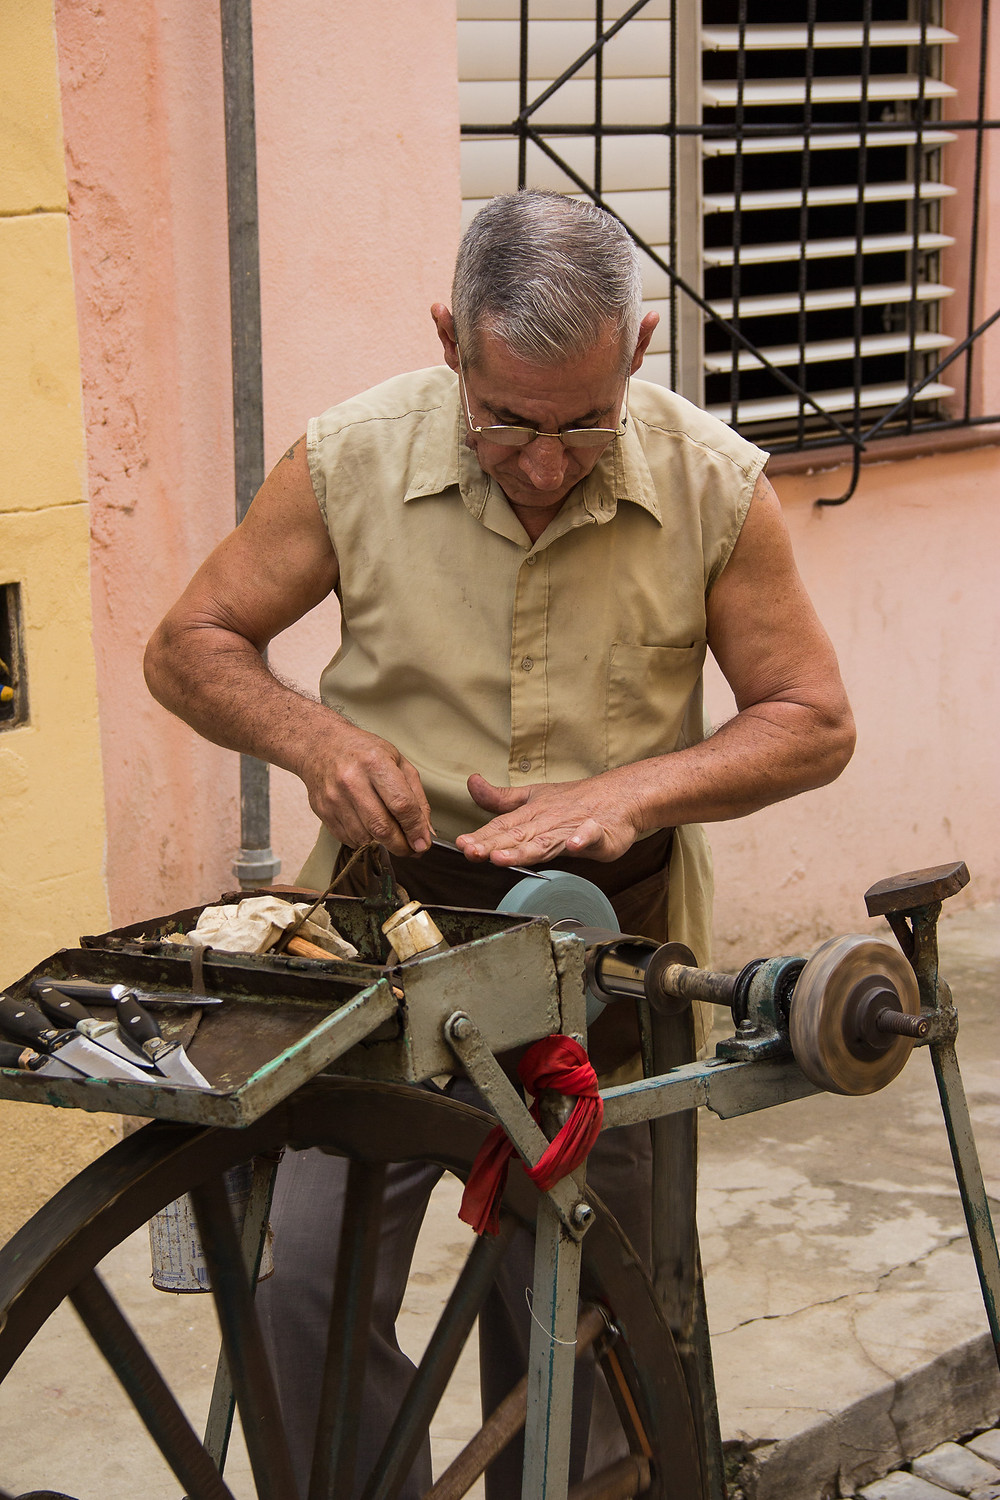 A knife sharpener working in the streets